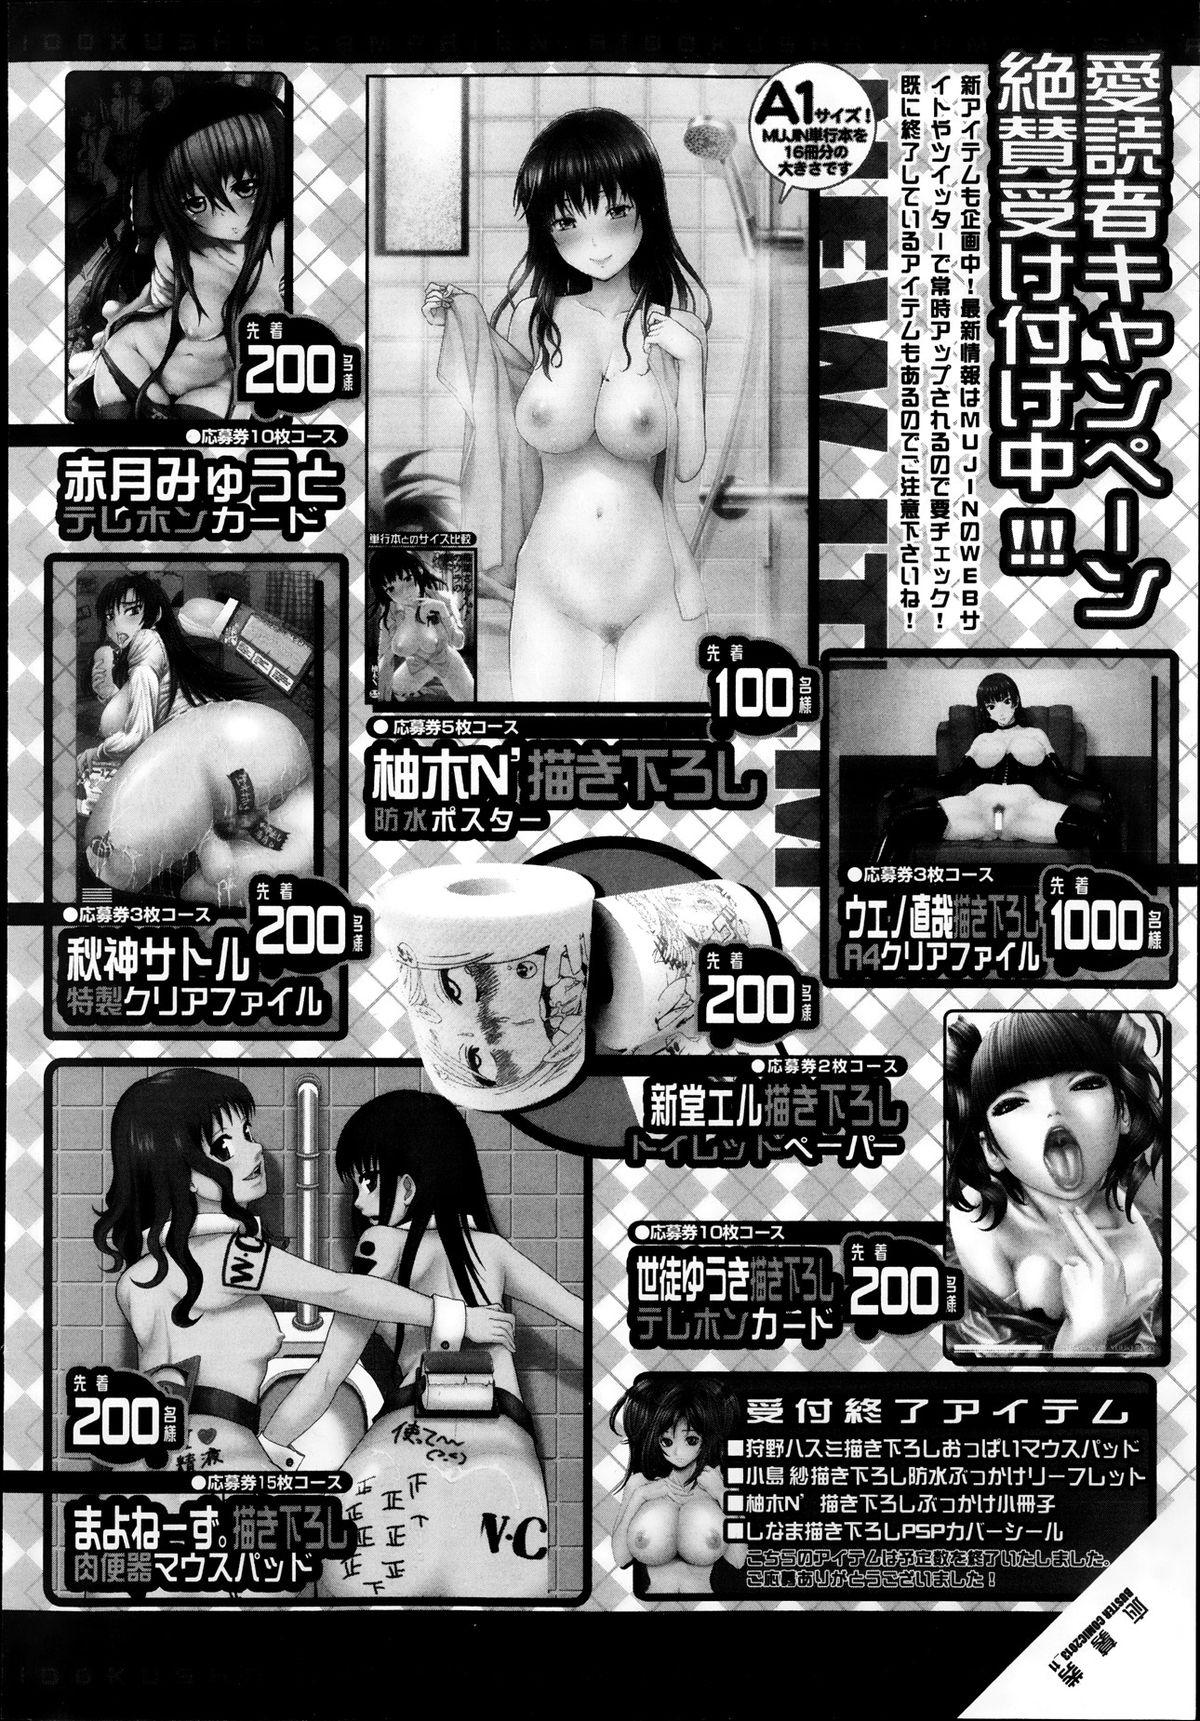 BUSTER COMIC 2013-11 454